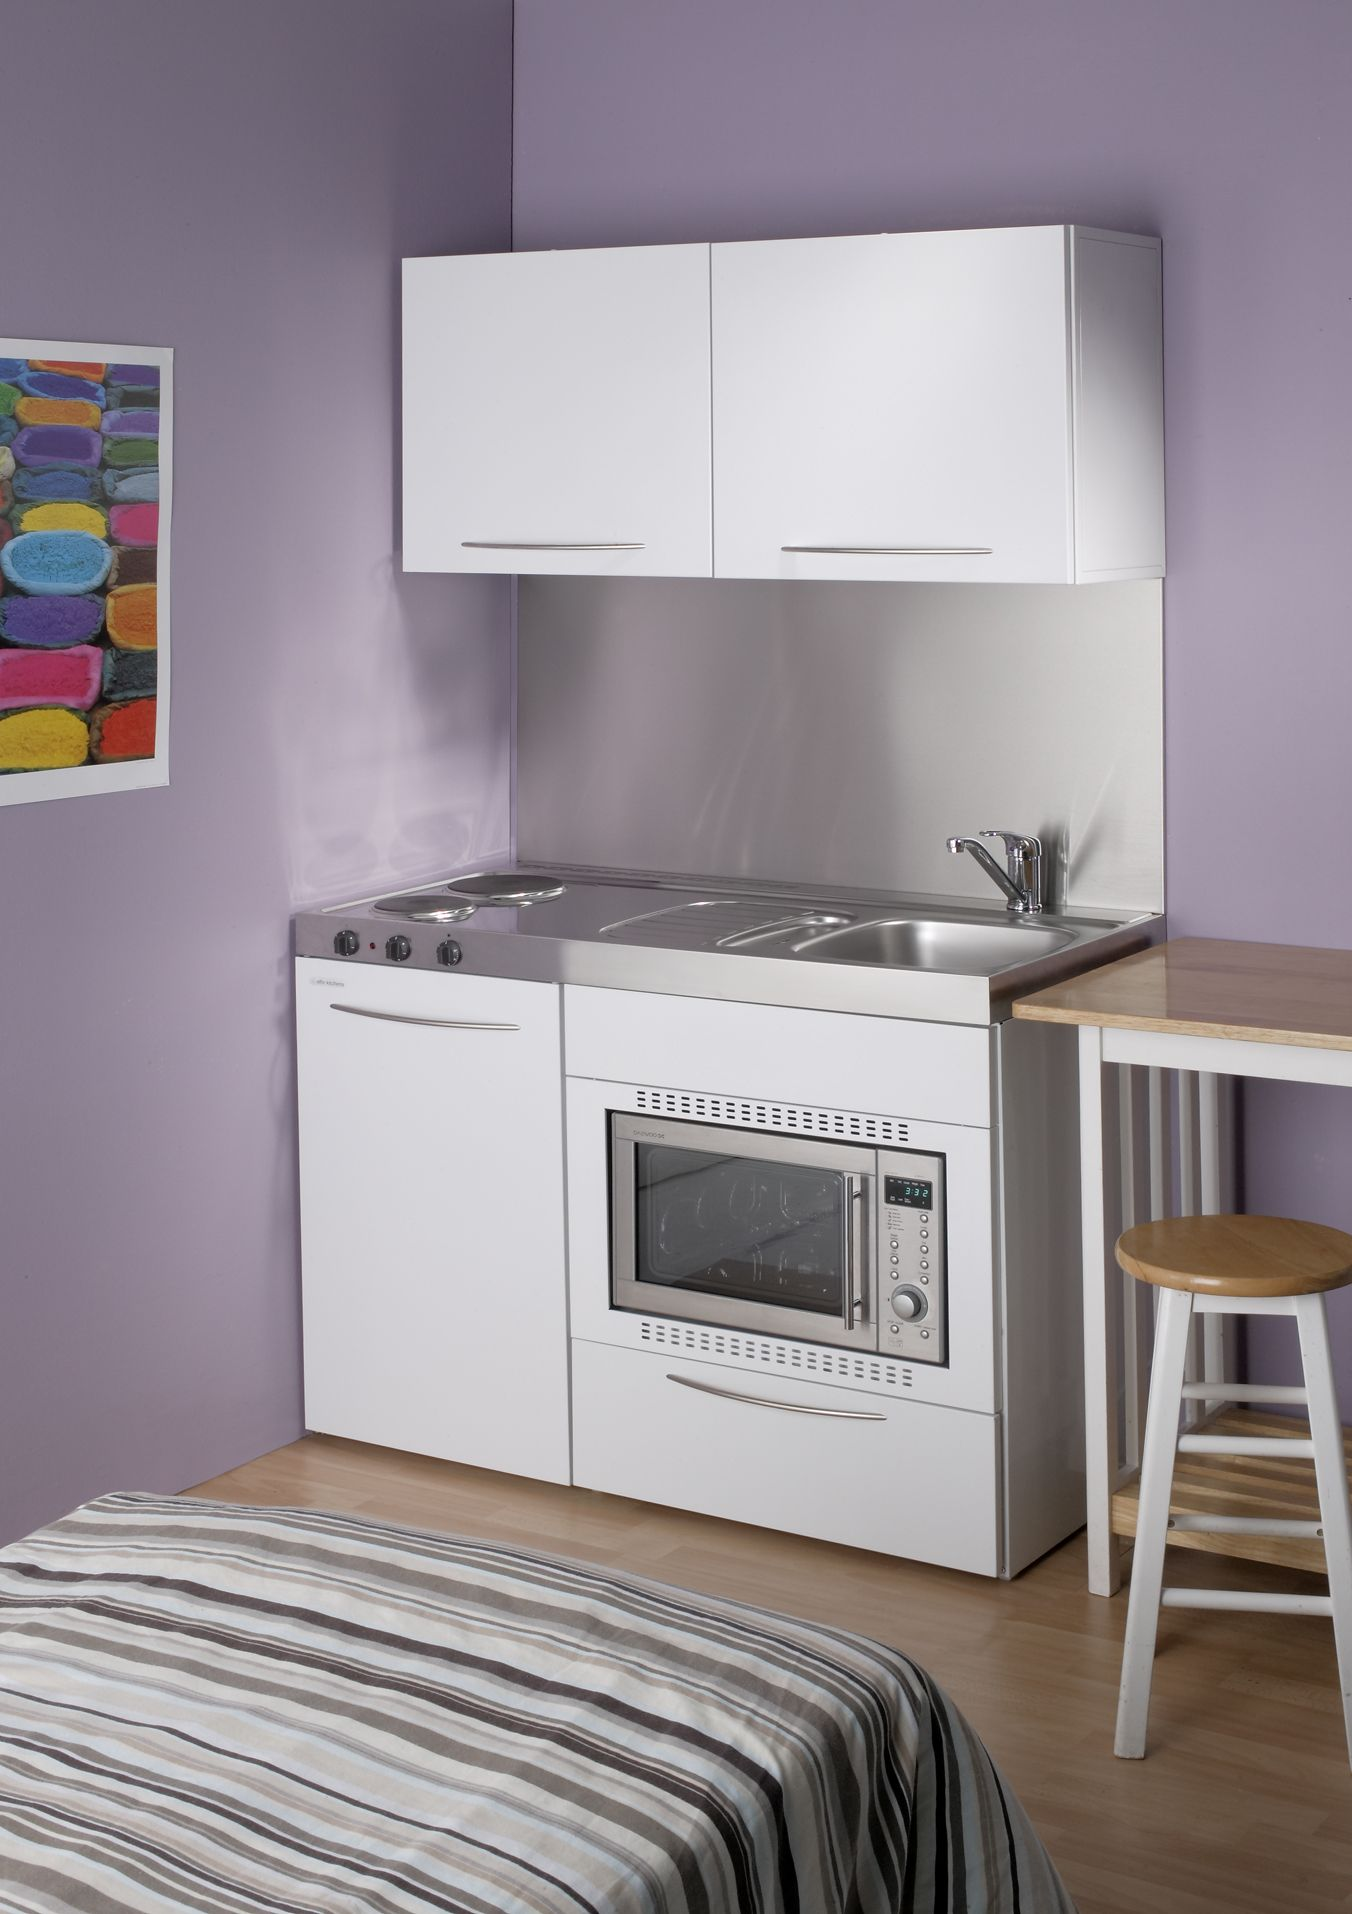 The Elfin Kitchens M 120 Standard Kitchen With 28 Litre